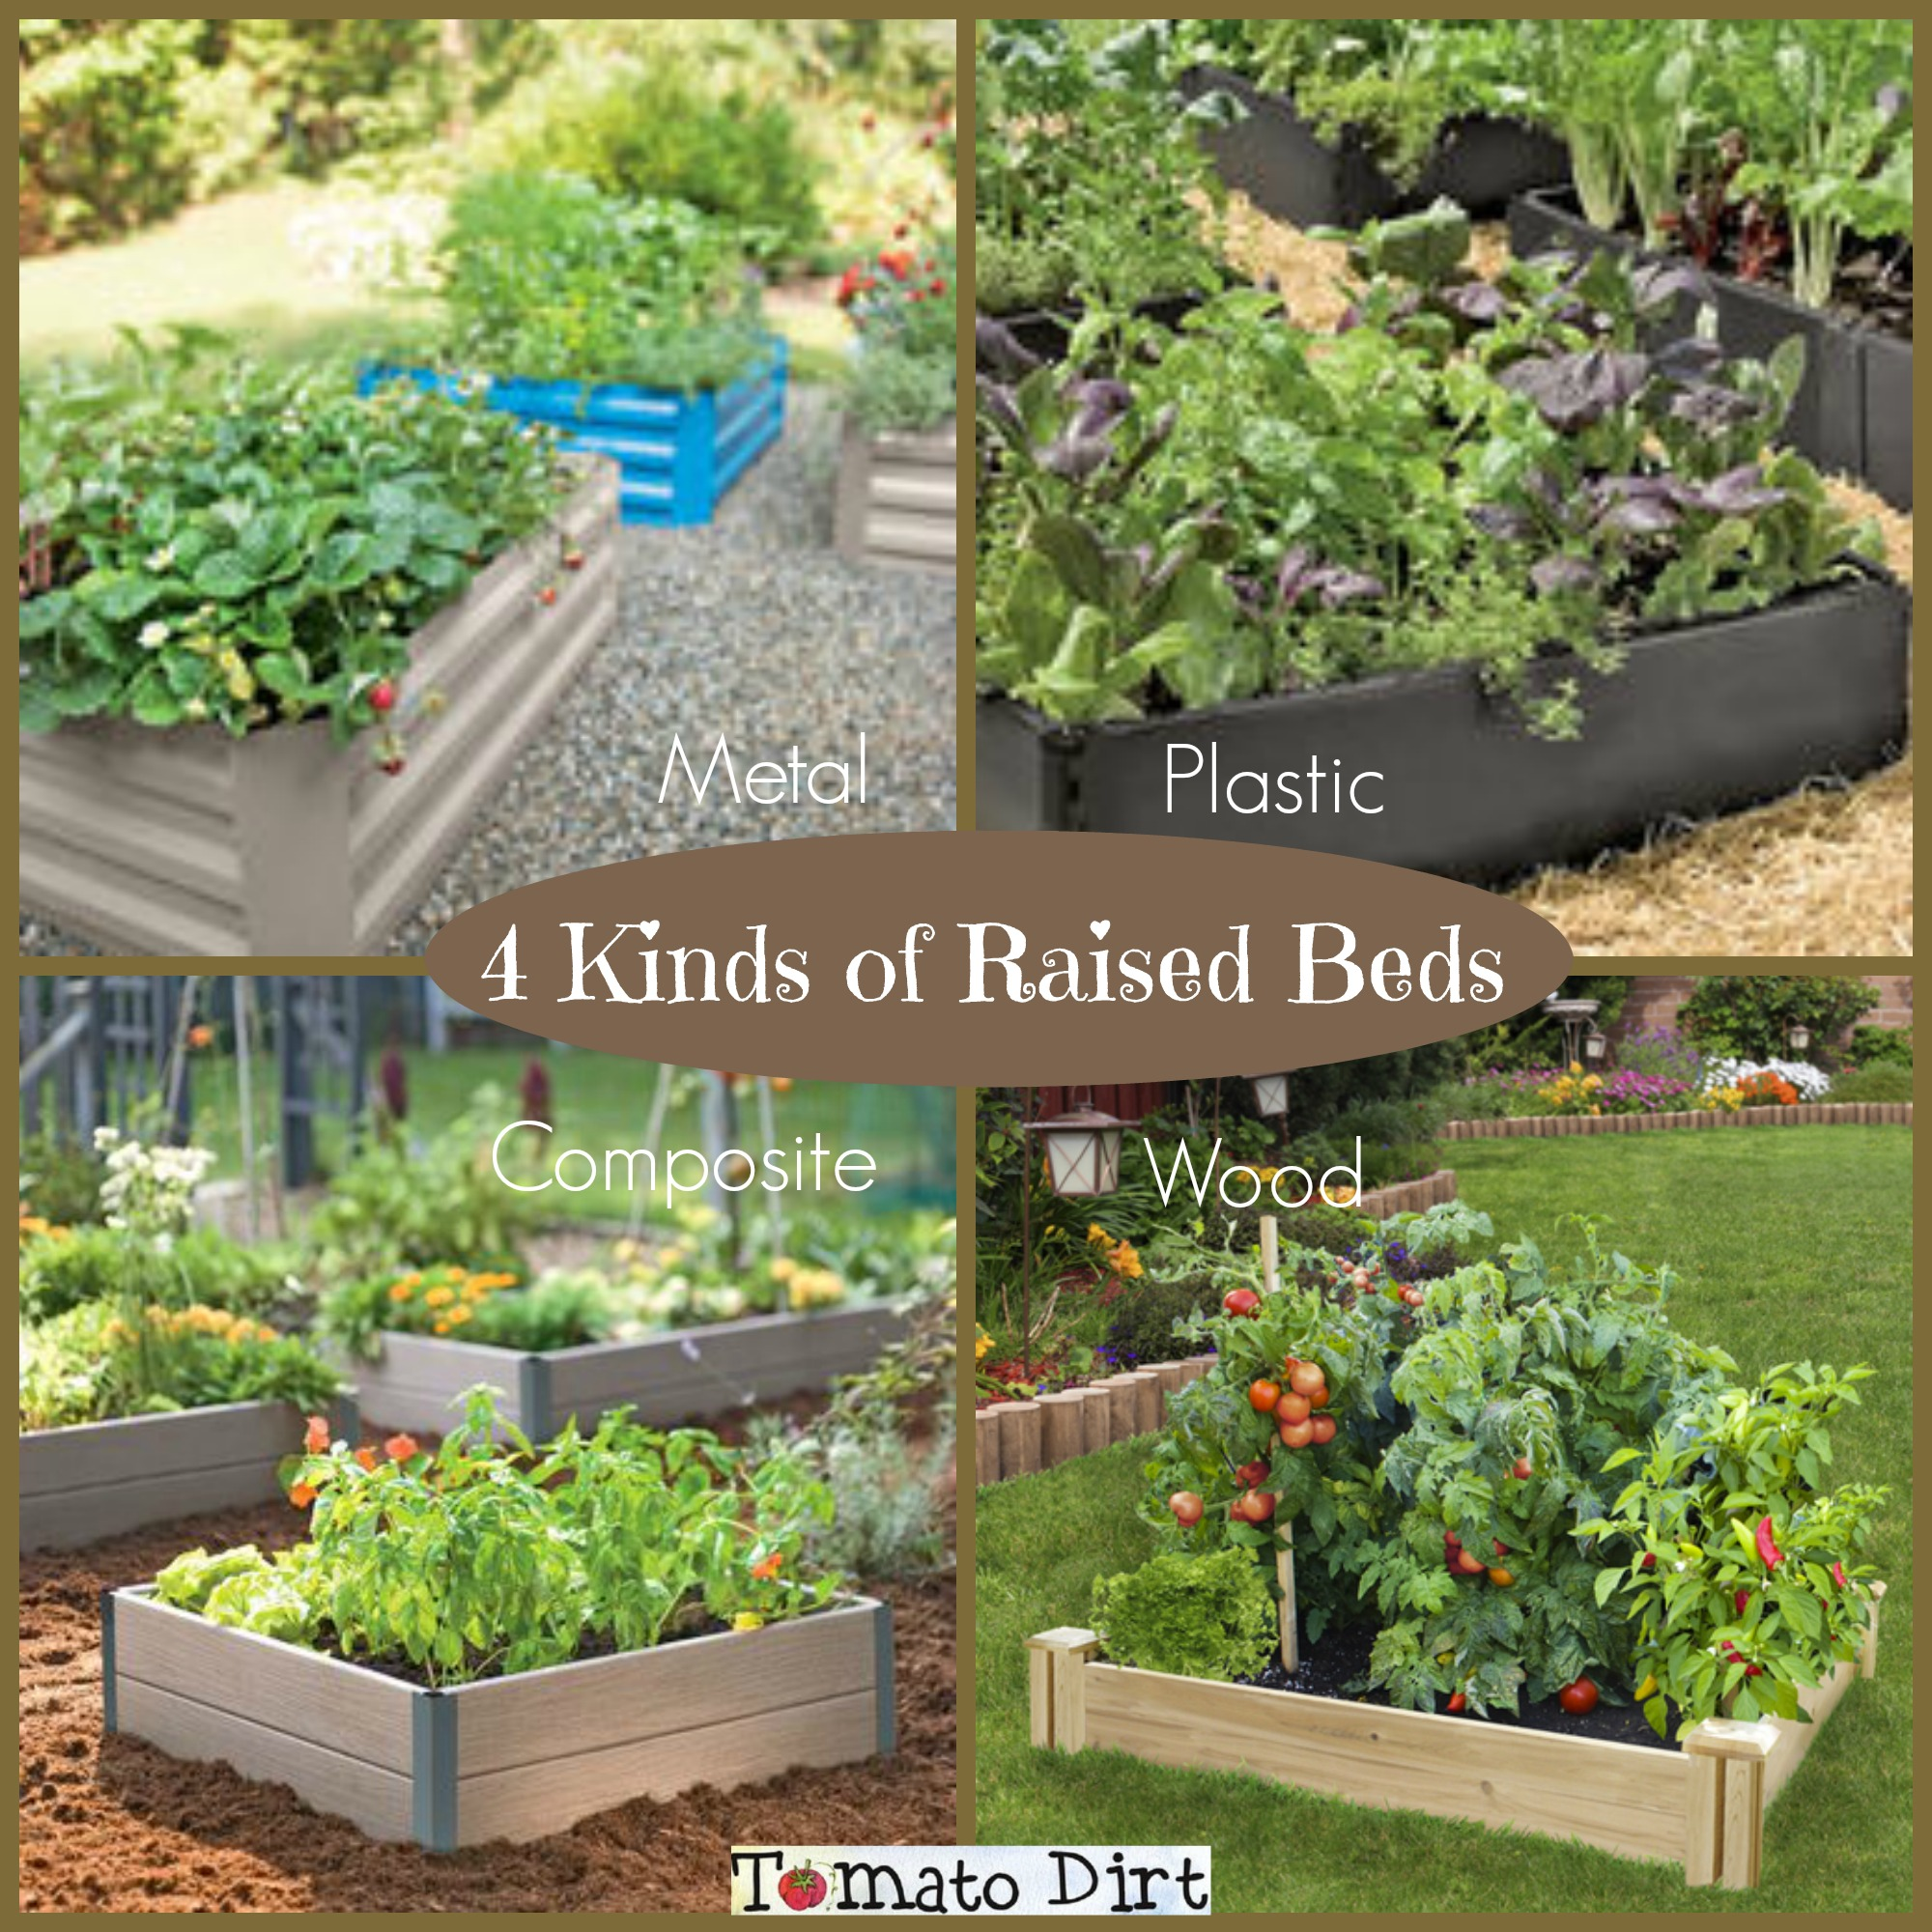 How to Choose Materials for Your Raised Garden Bed Herb And Flower Garden Designs Html on herb garden layout design, herb garden design plans, herb garden planning, herb landscaping, herb garden clip art, herb garden design software, herb container gardens, herb garden ideas, herb knot garden design,